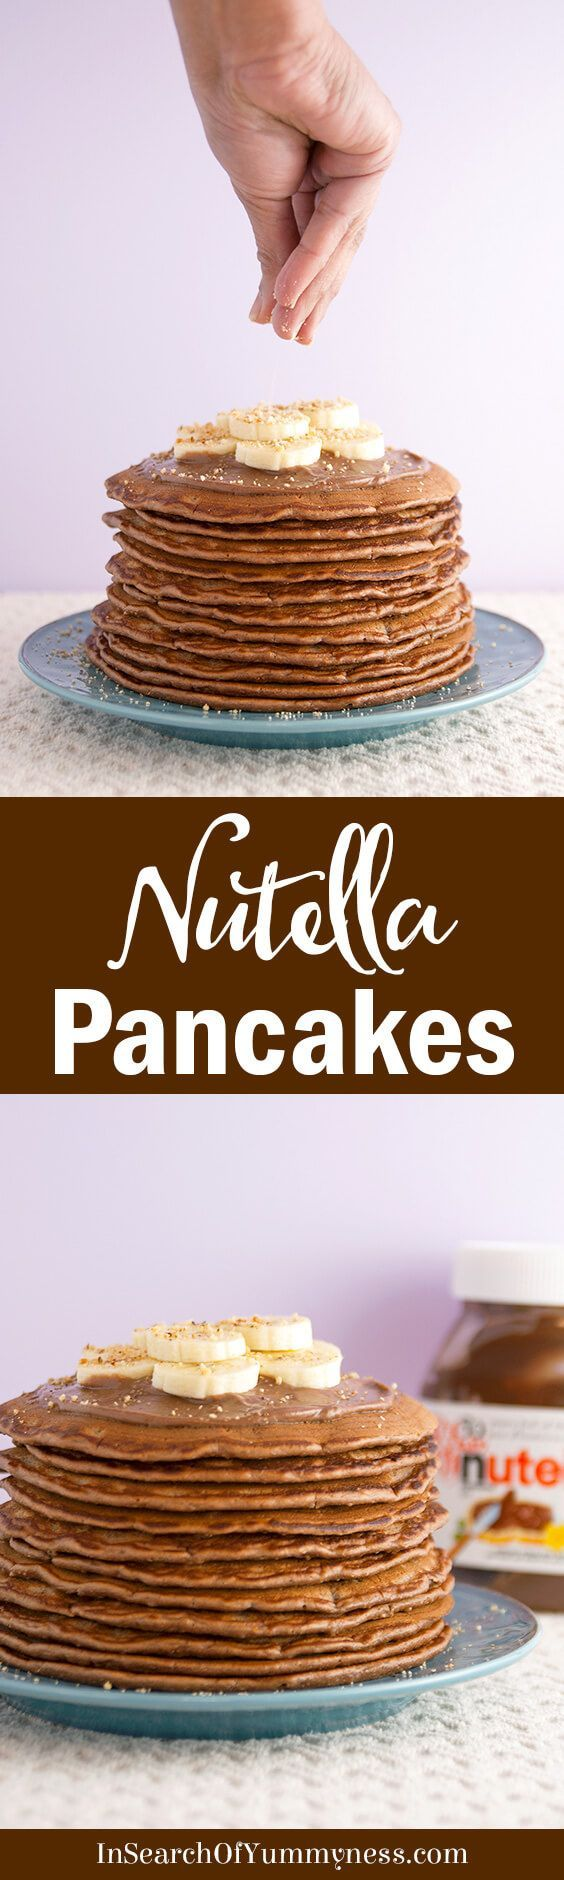 These Nutella Pancakes with Mascarpone Cream are totally decadent! Whip up a batch for a special brunch or Valentines Day treat. Get the #recipe at InSearchOfYummyness.com #Nutella #Pancakes #Ad via @InSearchOfYummy